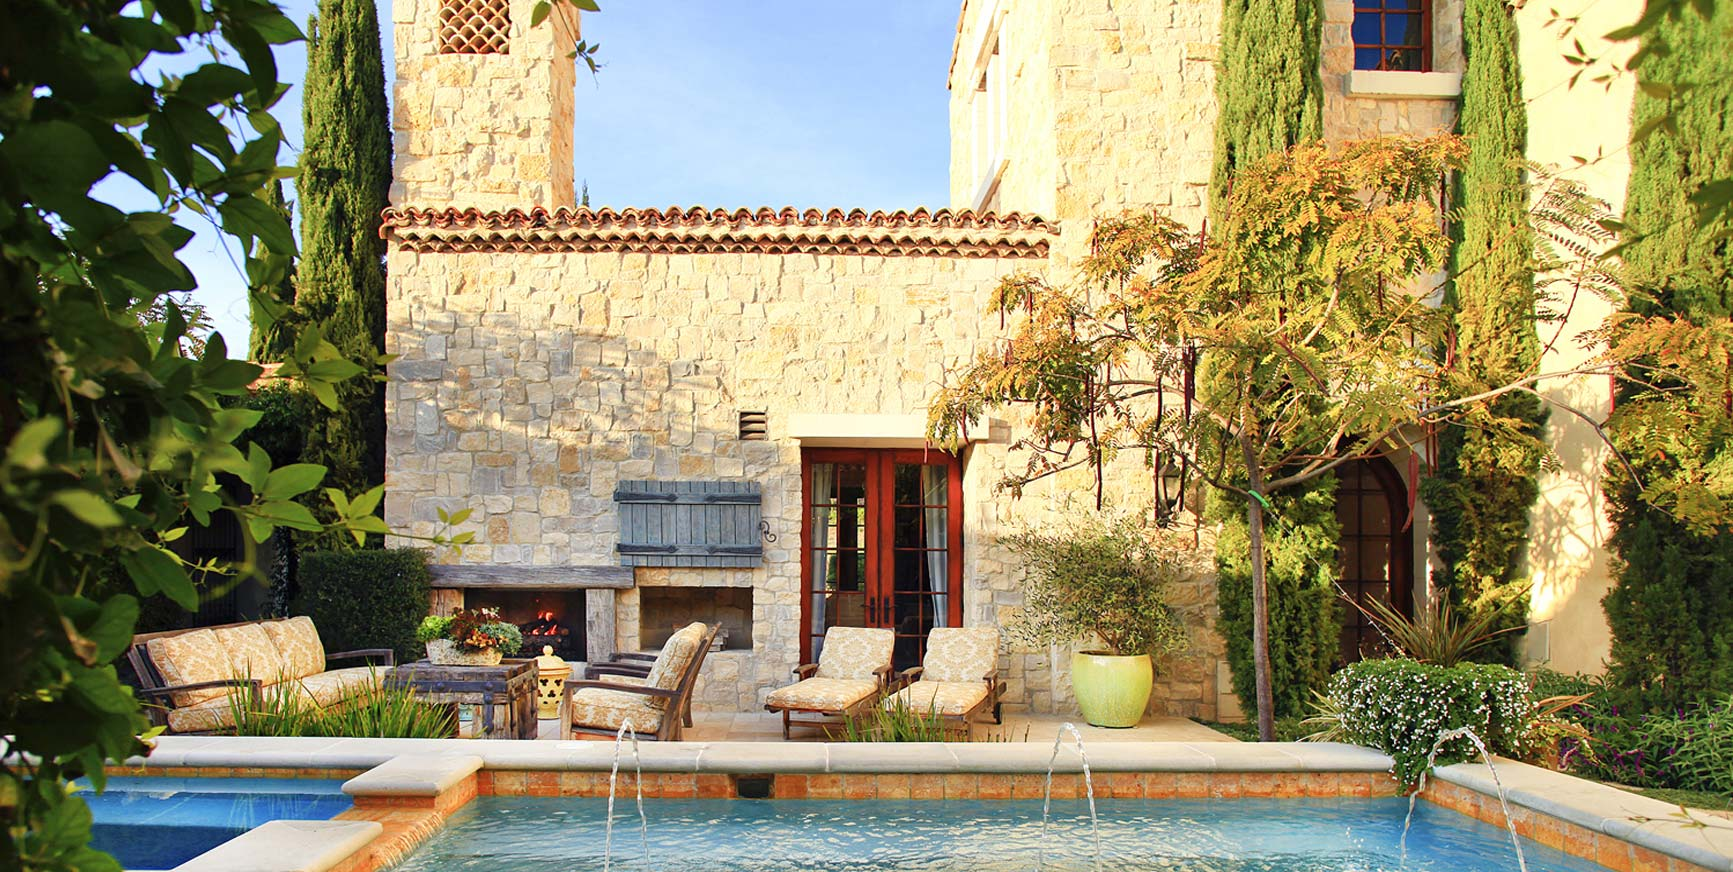 FRENCH PROVENCE FARMHOUSE COURTYARD